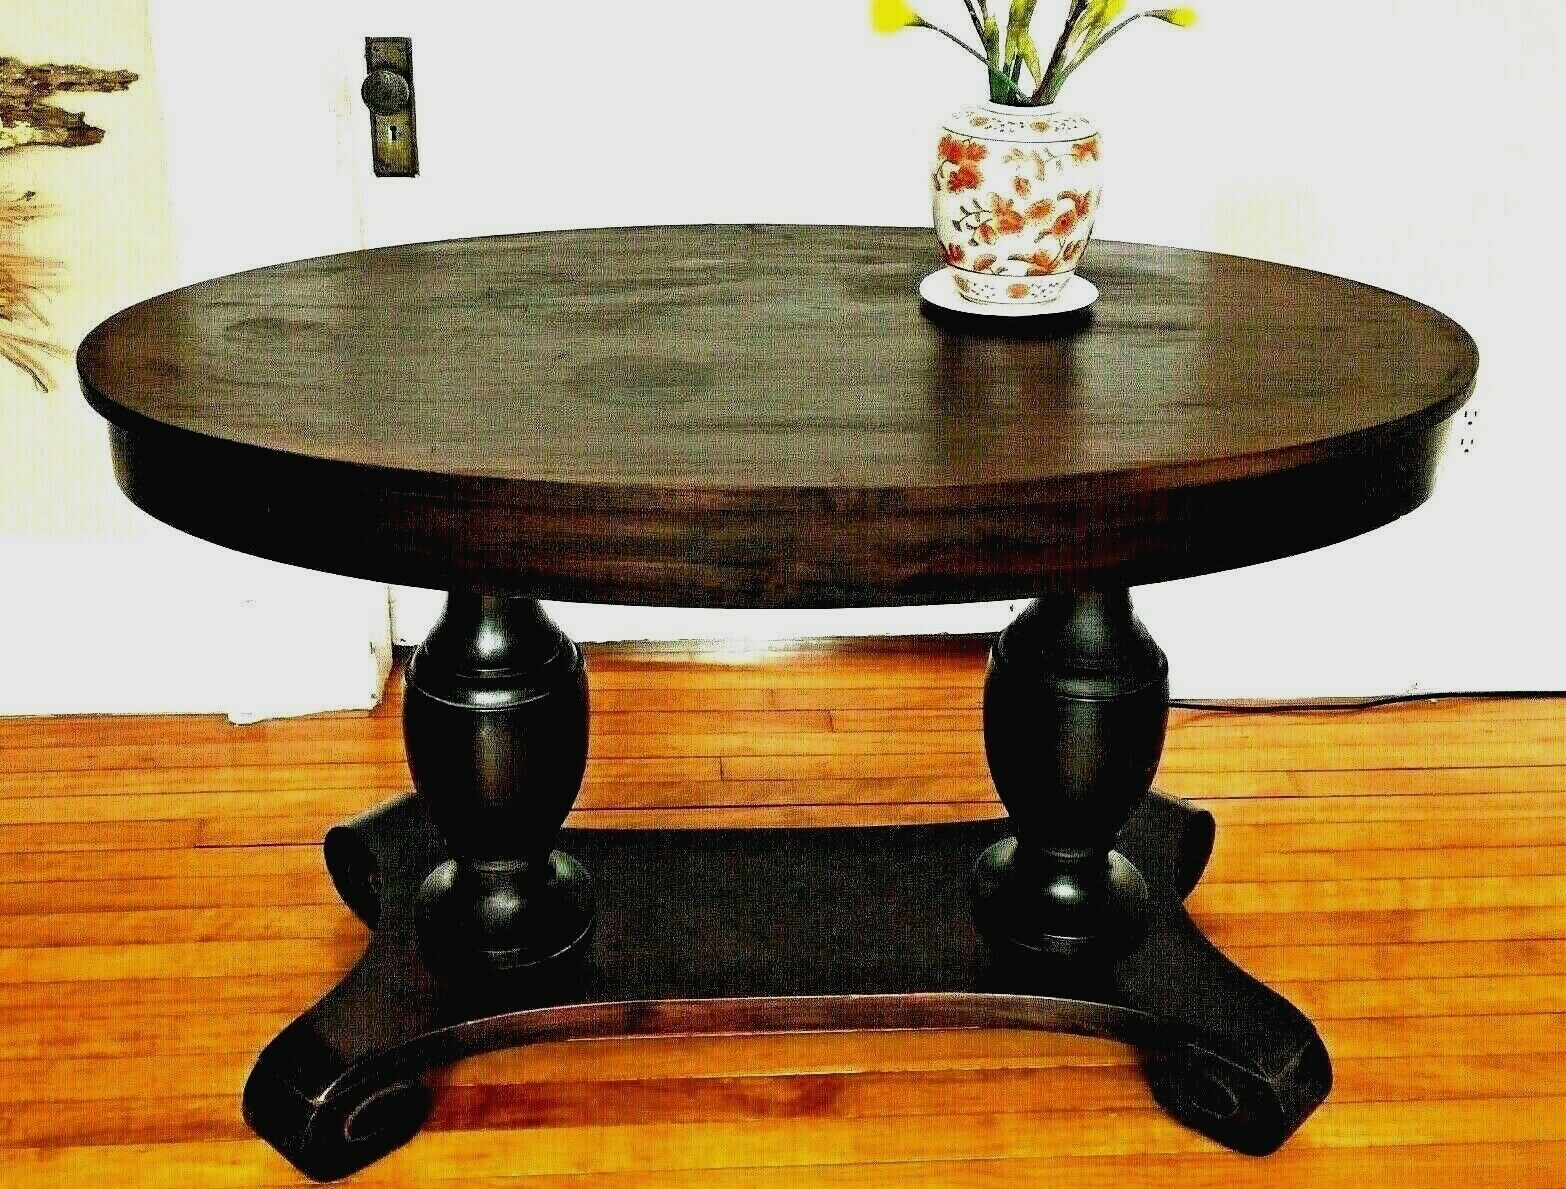 Antique Empire Library Table With Urn Legs  - $699.99